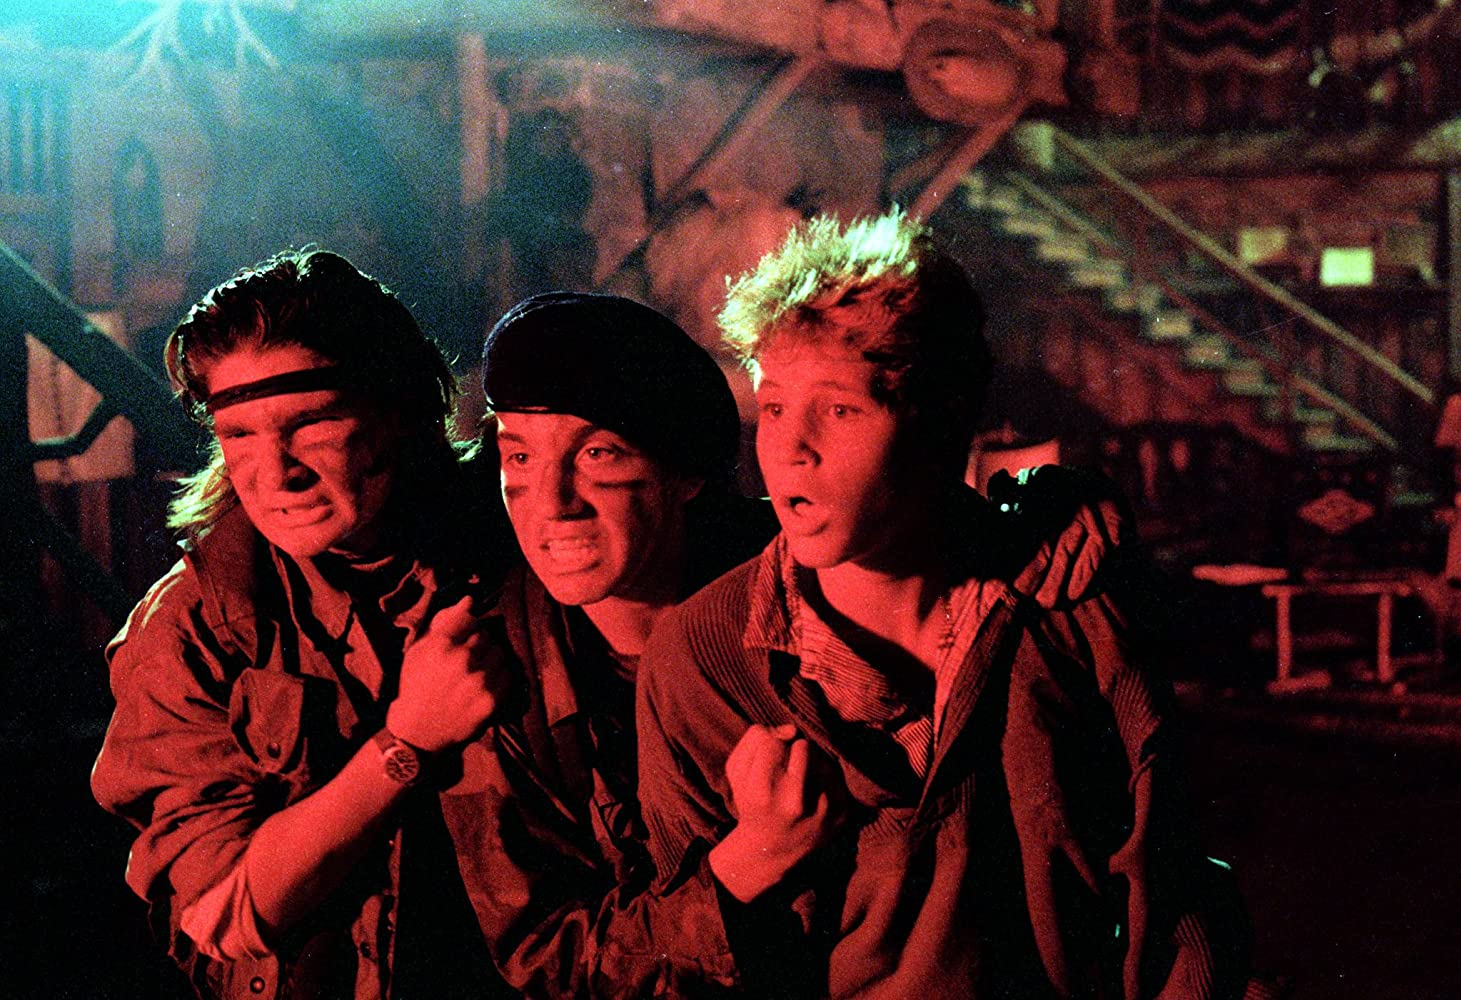 Corey Feldman, Corey Haim, and Jamison Newlander in The Lost Boys (1987)